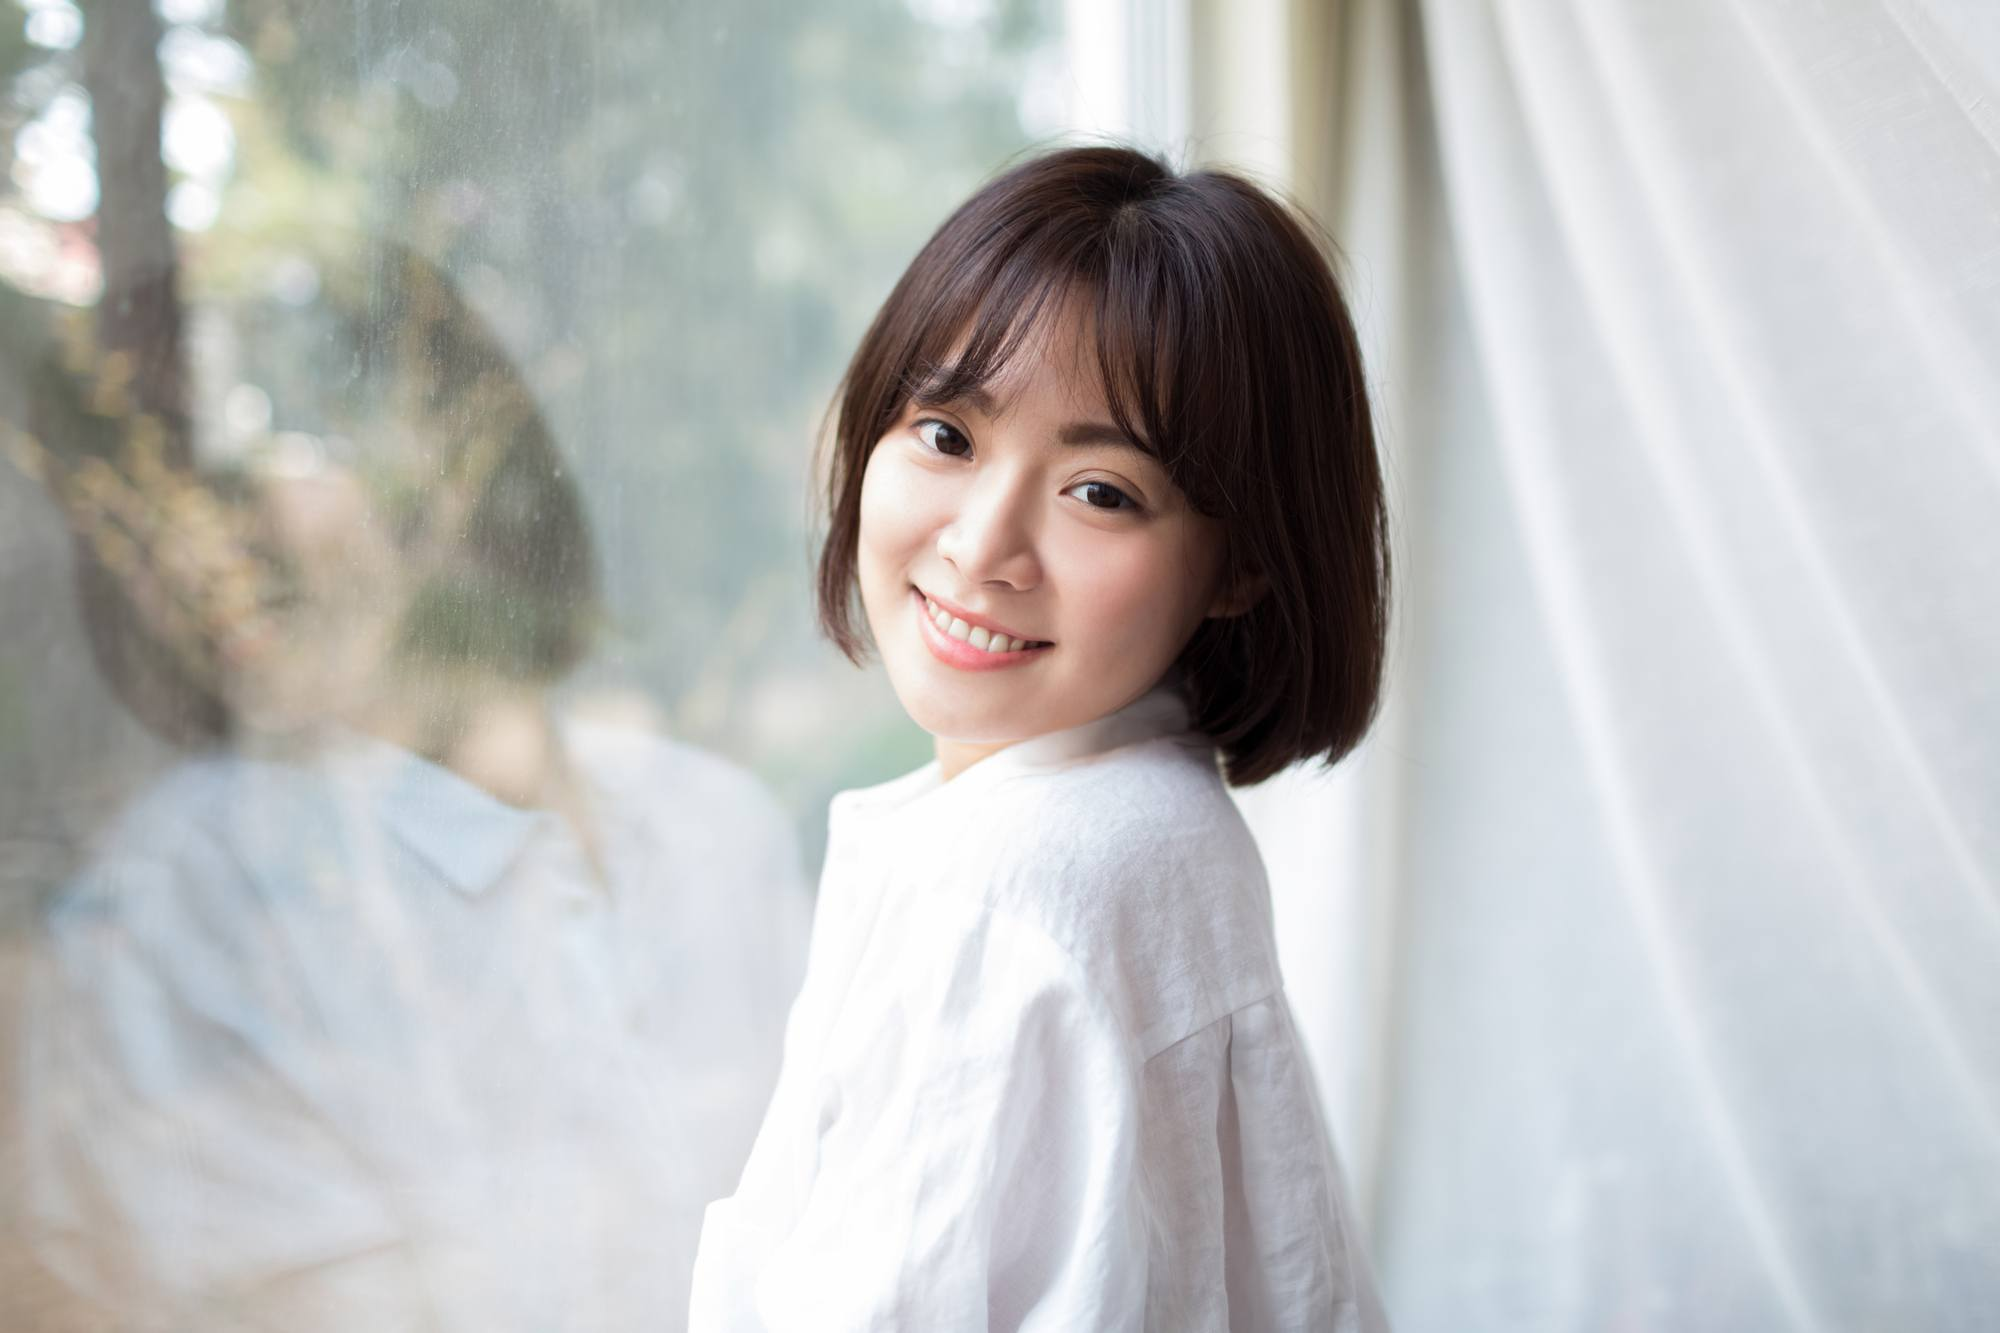 Hair types: pretty young chinese girl, wearing a white shirt standing in the room